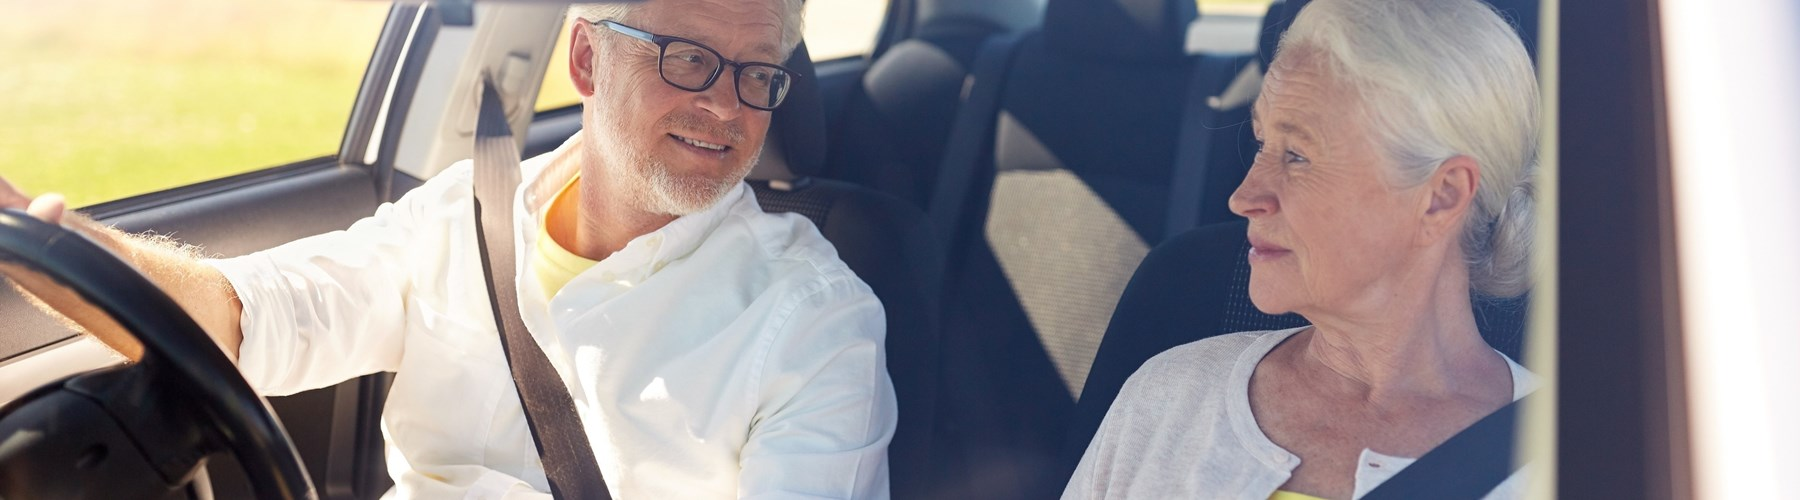 older couple smiling in car